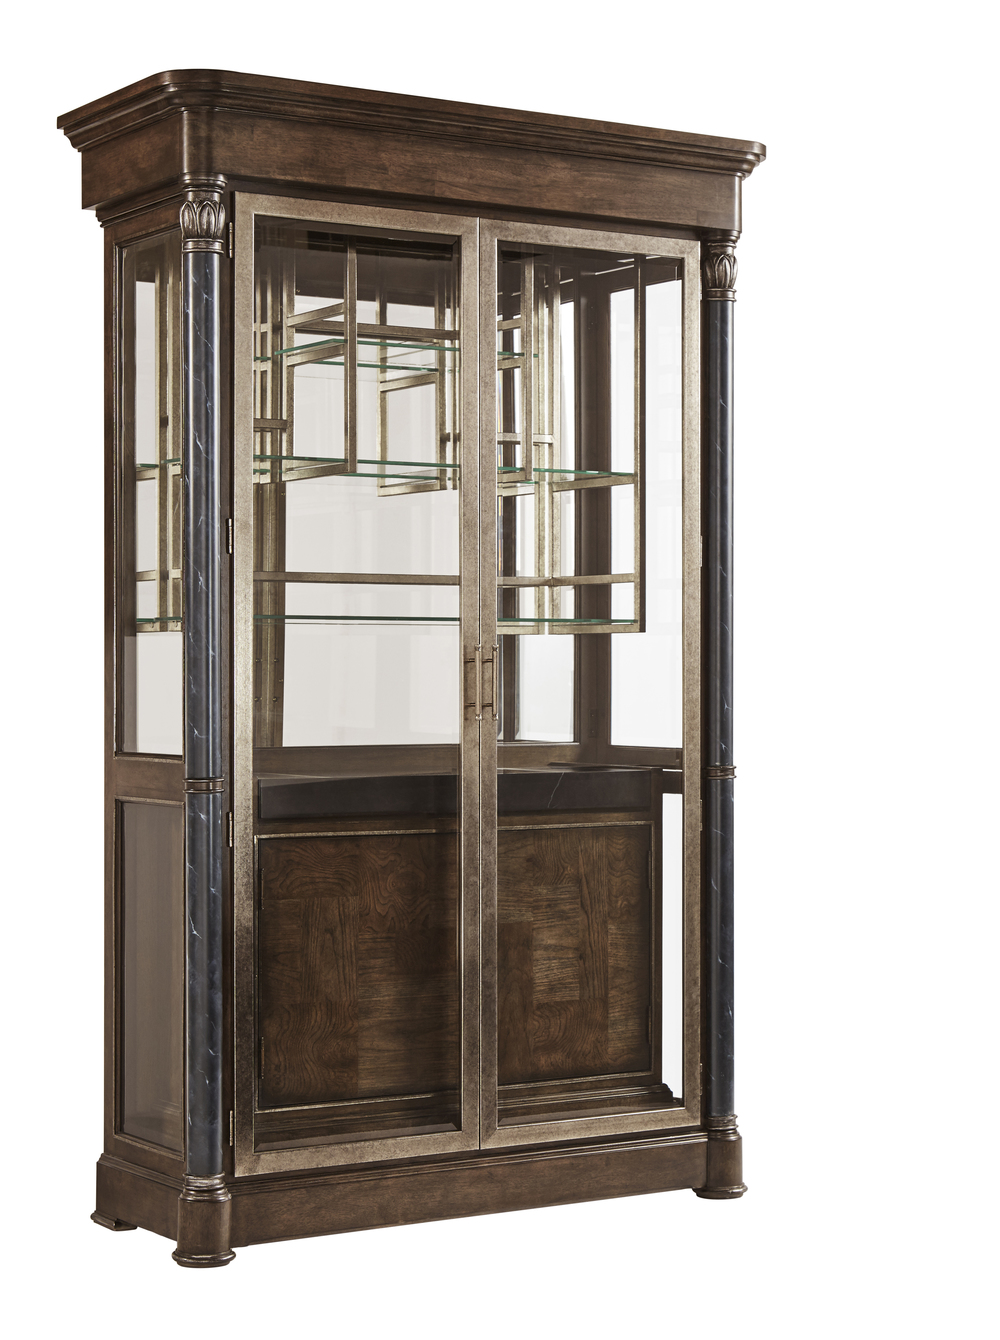 A.R.T. Furniture - Display Cabinet